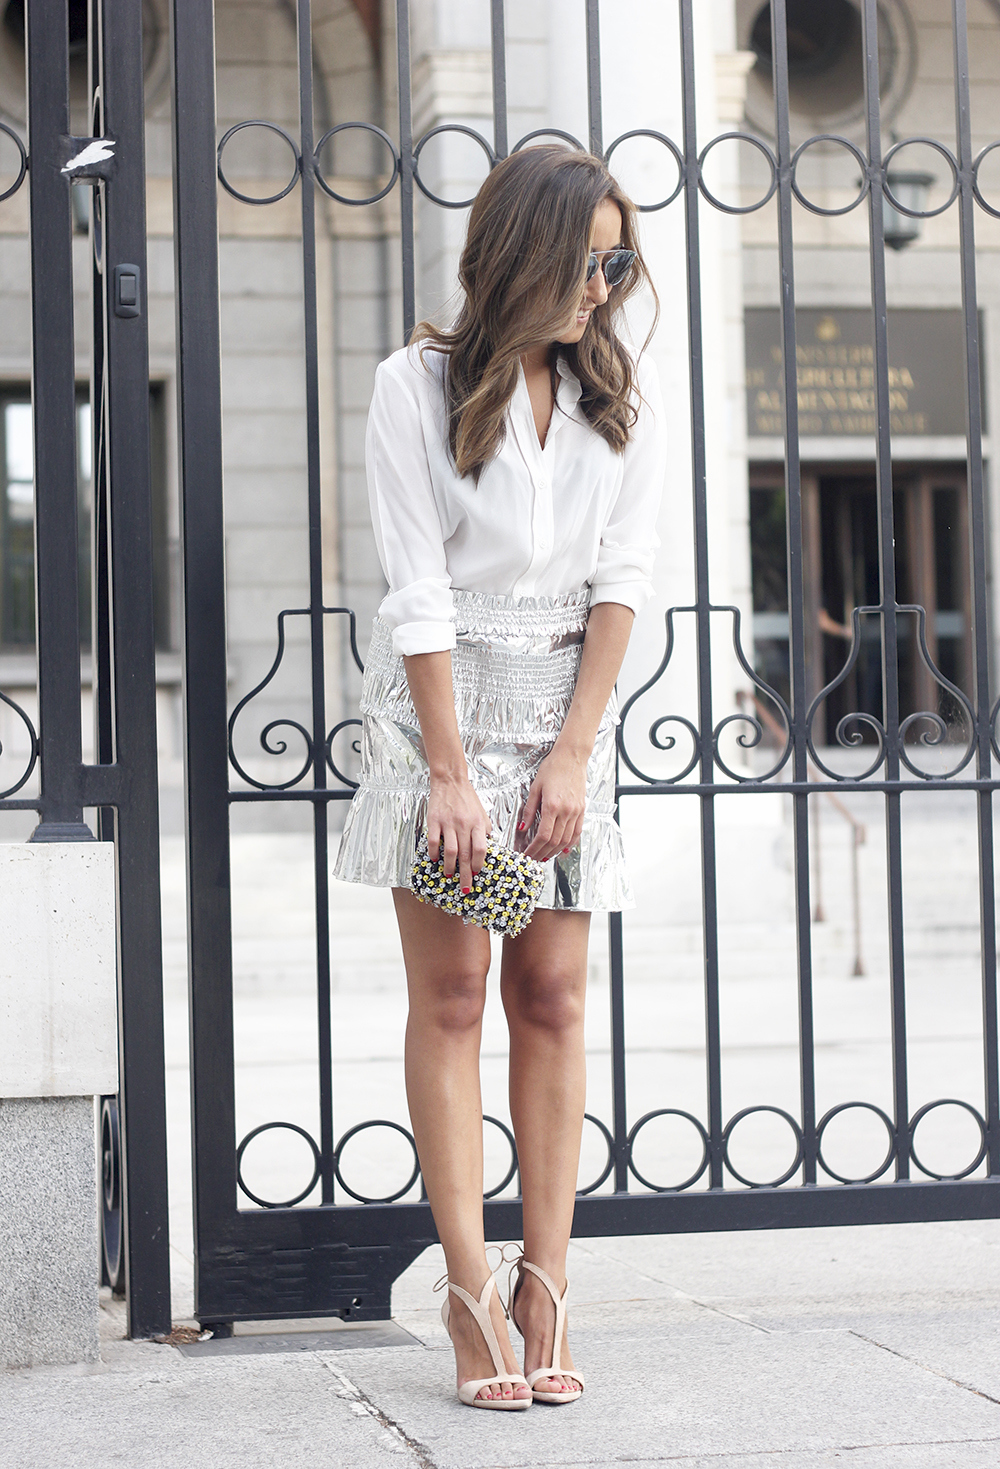 Isabel Marant Metallic Skirt white shirt nude sandals dior so real sunnies outfit style fashion22